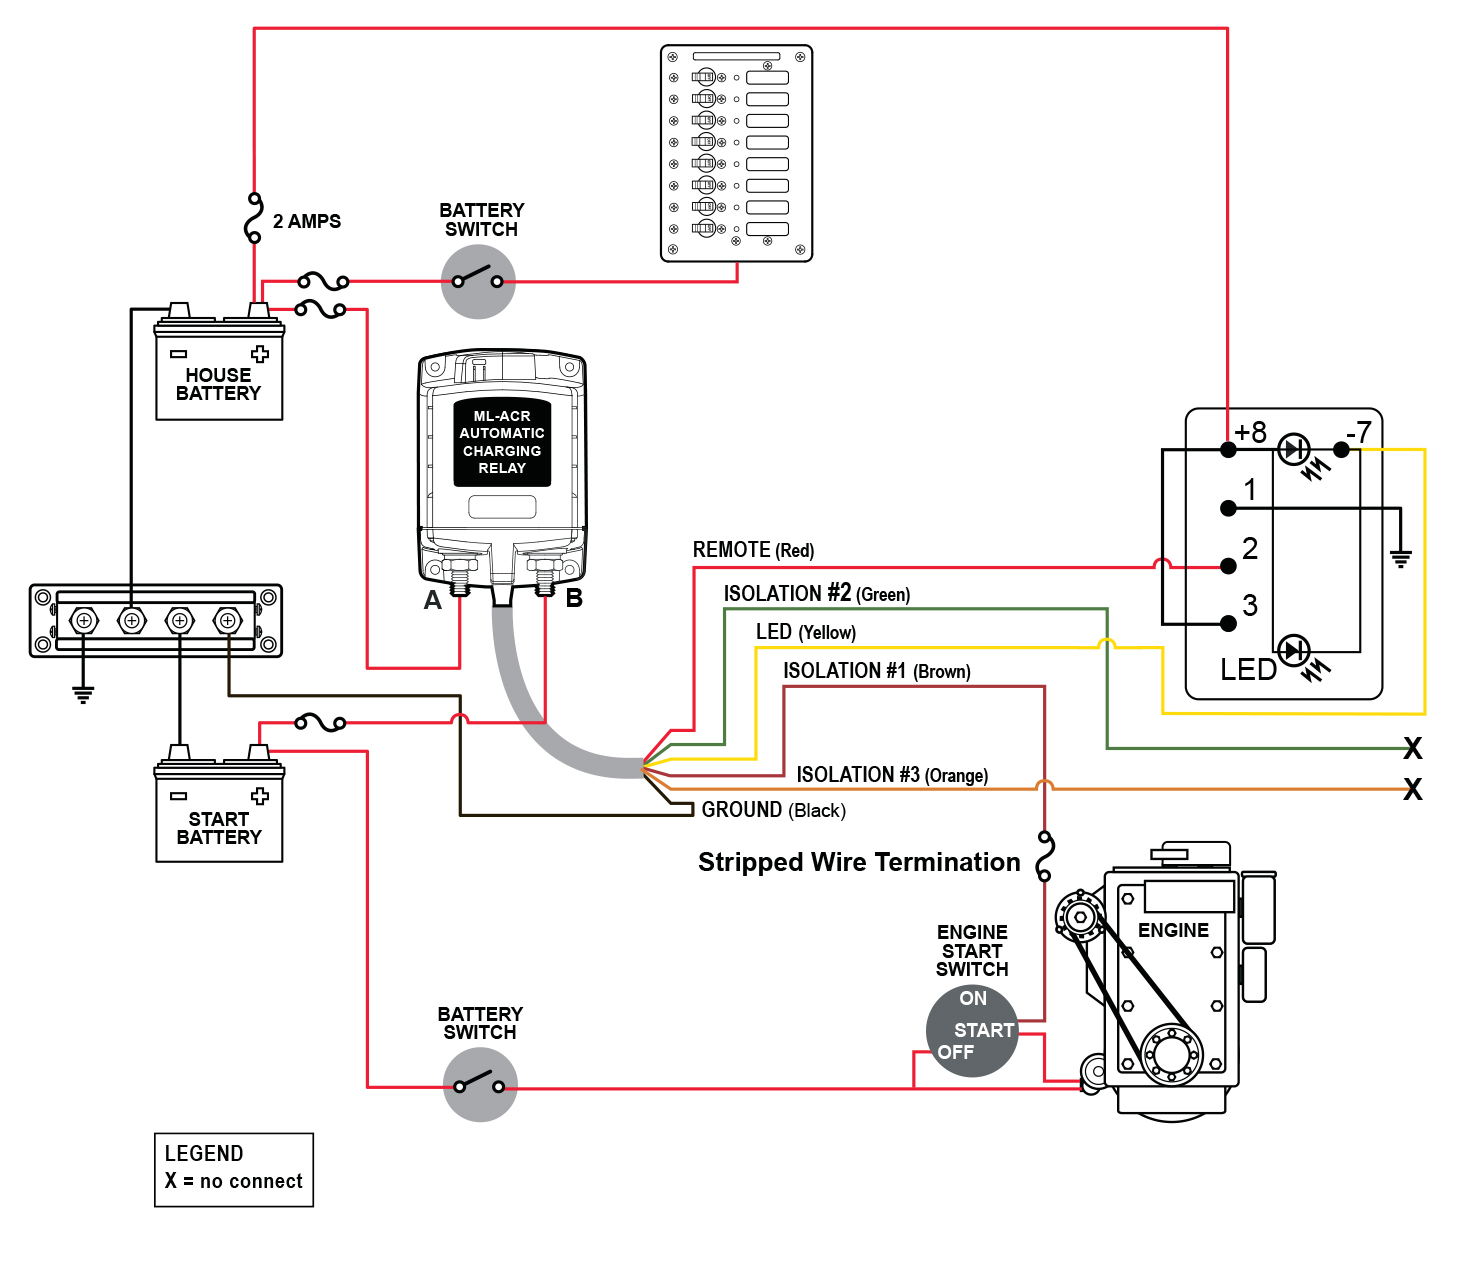 Blue Sea ML-ACR automatic charging relay wiring diagram.